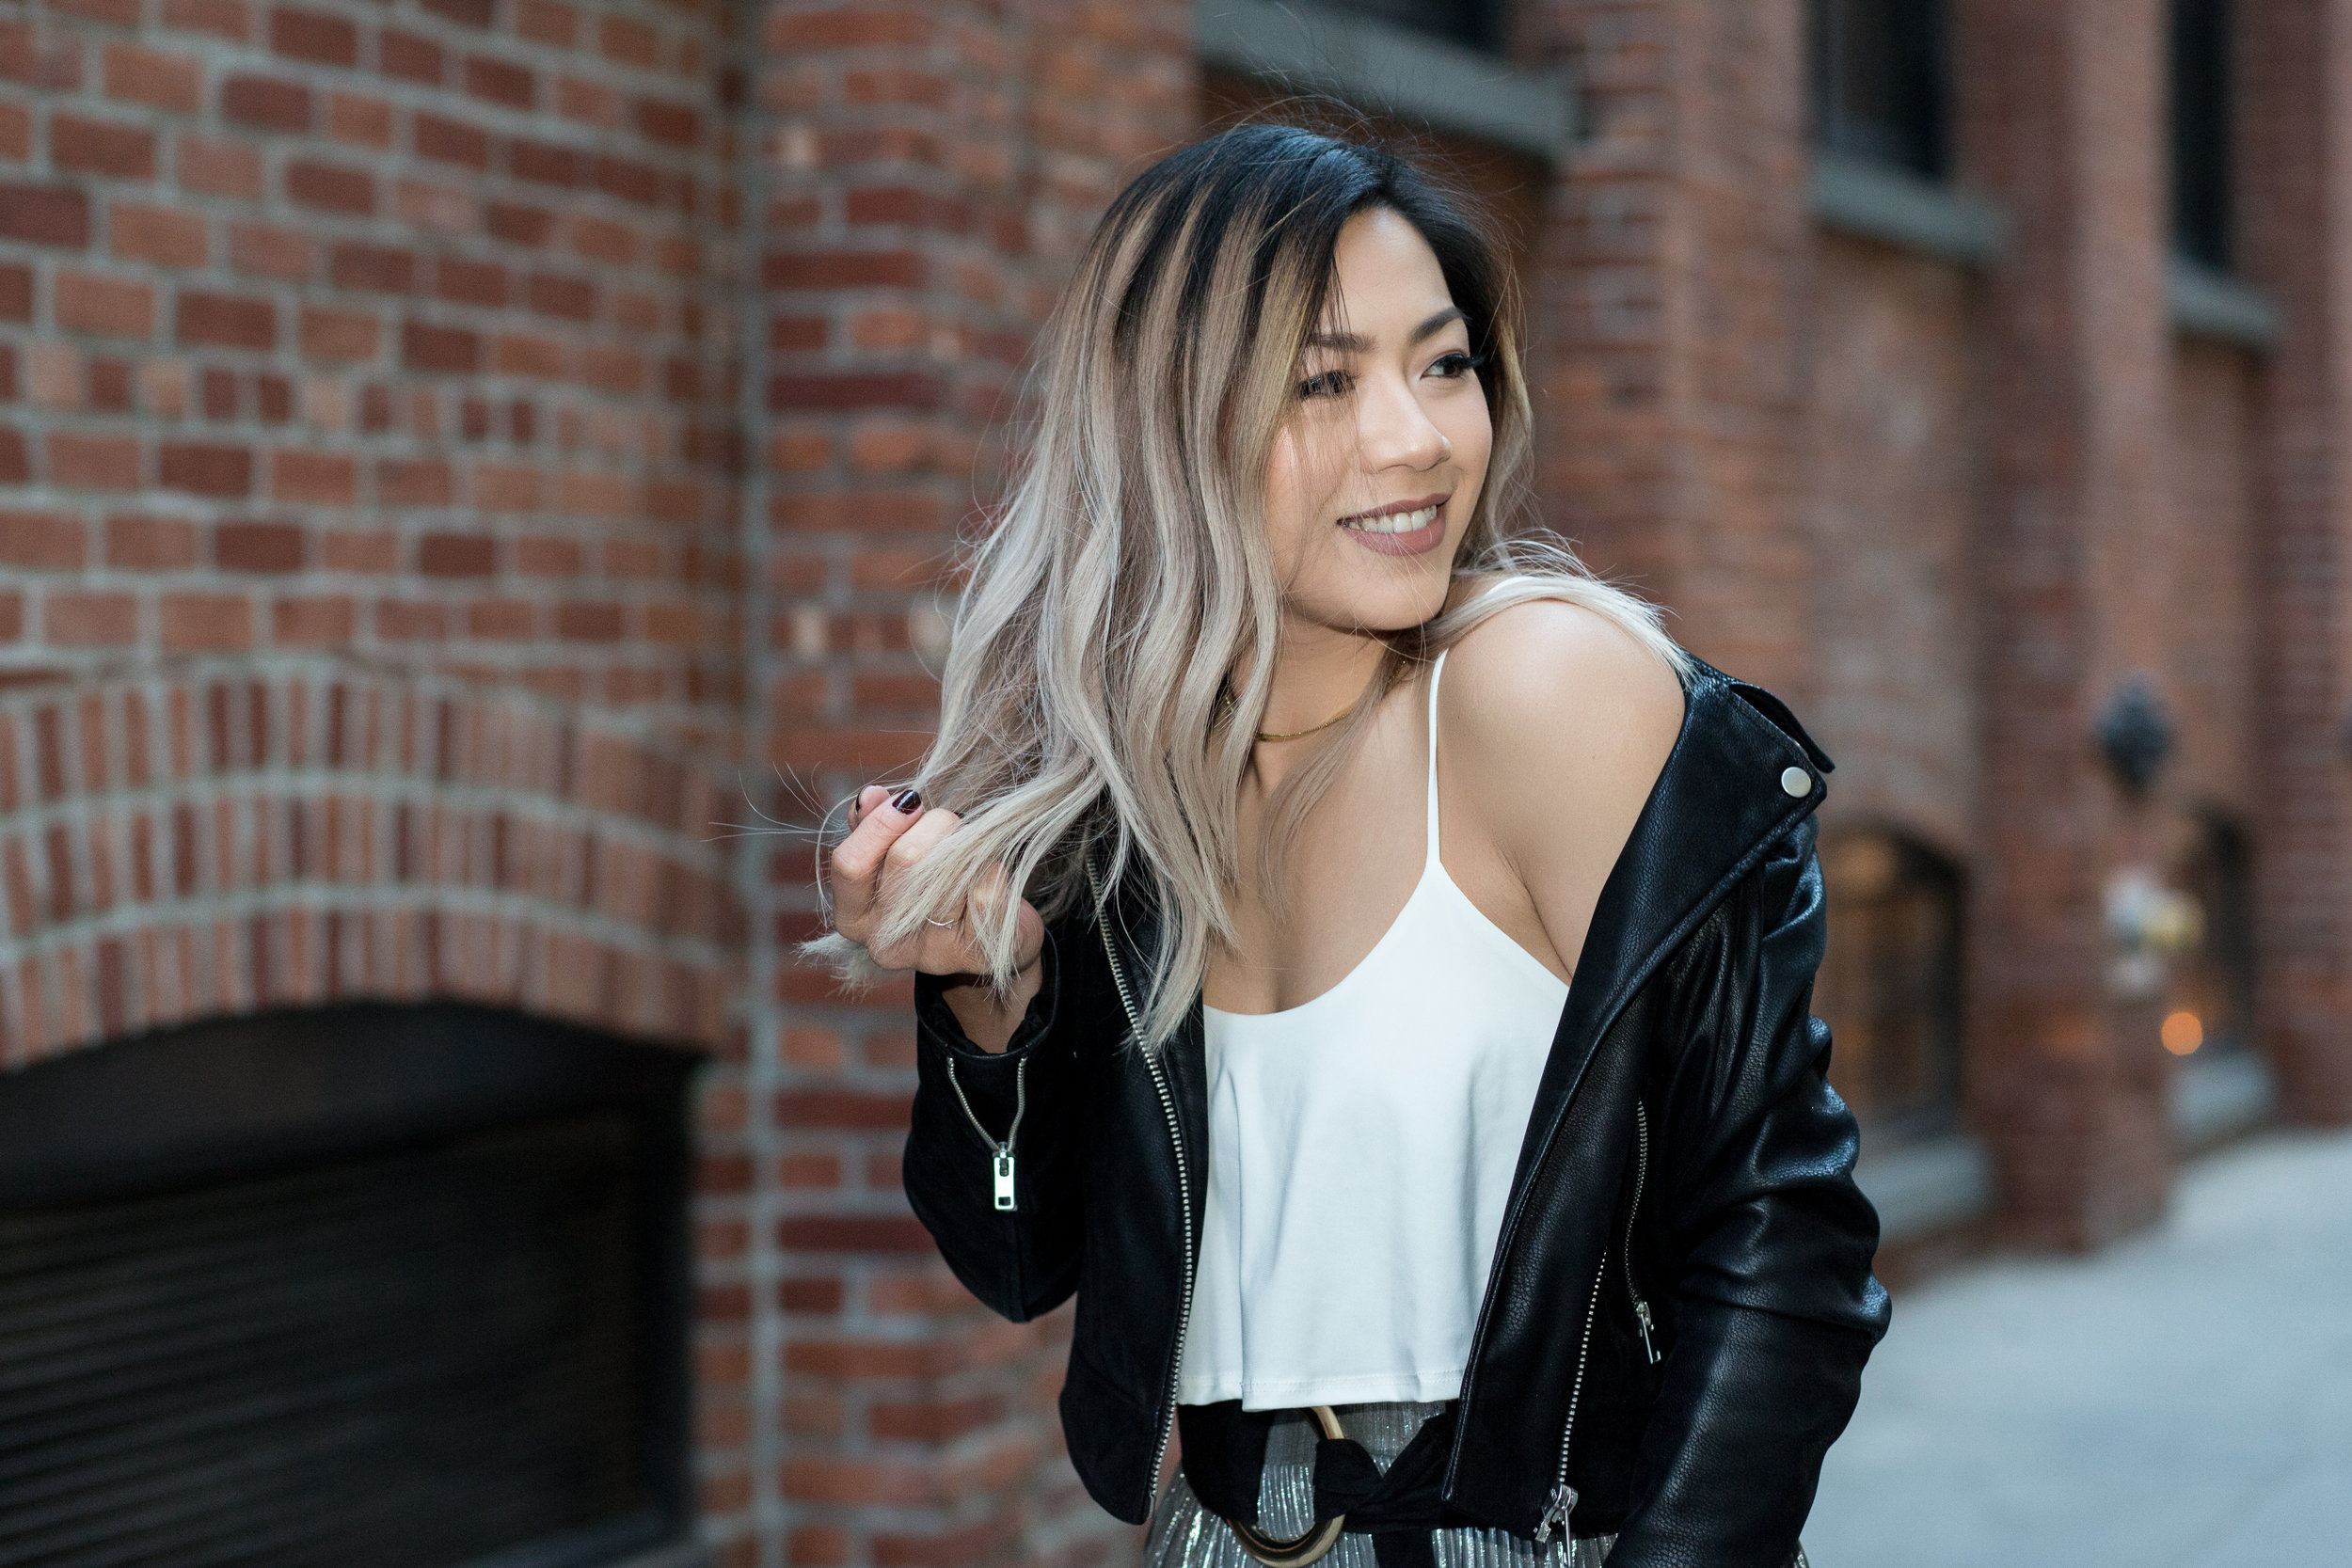 Elva silver Metallic Pleated Midi Skirt,boohoo, moto leather jacket, how to style. holiday outfit ideas, kendal and kylie lace up booties, fall outfit, winter outfit